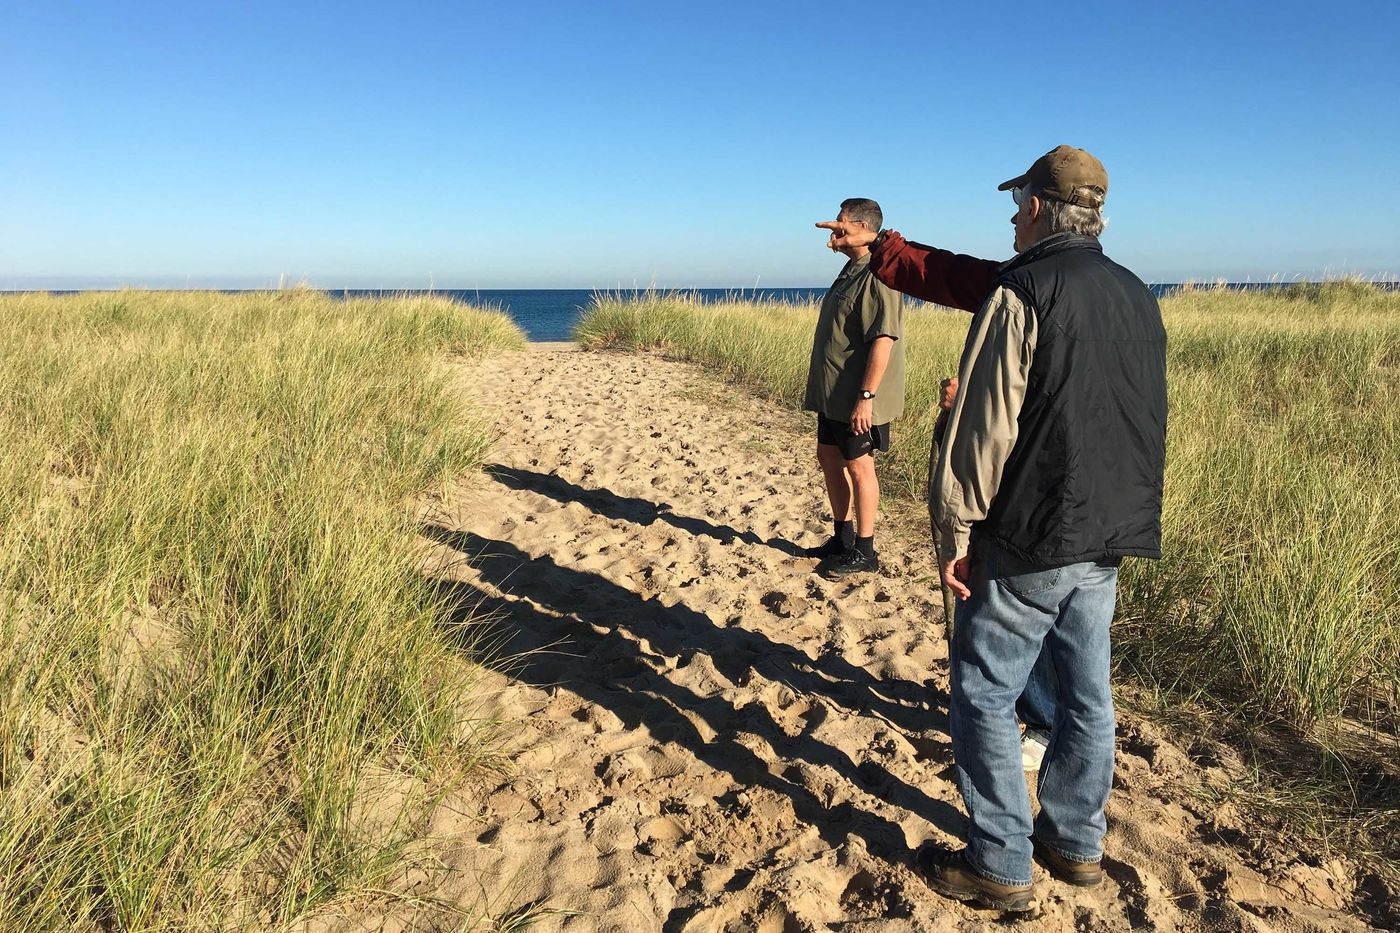 Three people stand on a sandy path that cuts through dune grass on both sides. All three people are looking off to the left and one of them is pointing. They cast long shadows on the sand in front of them. The dark blue water of Lake Michigan is in the background, with lighter blue sky above it.